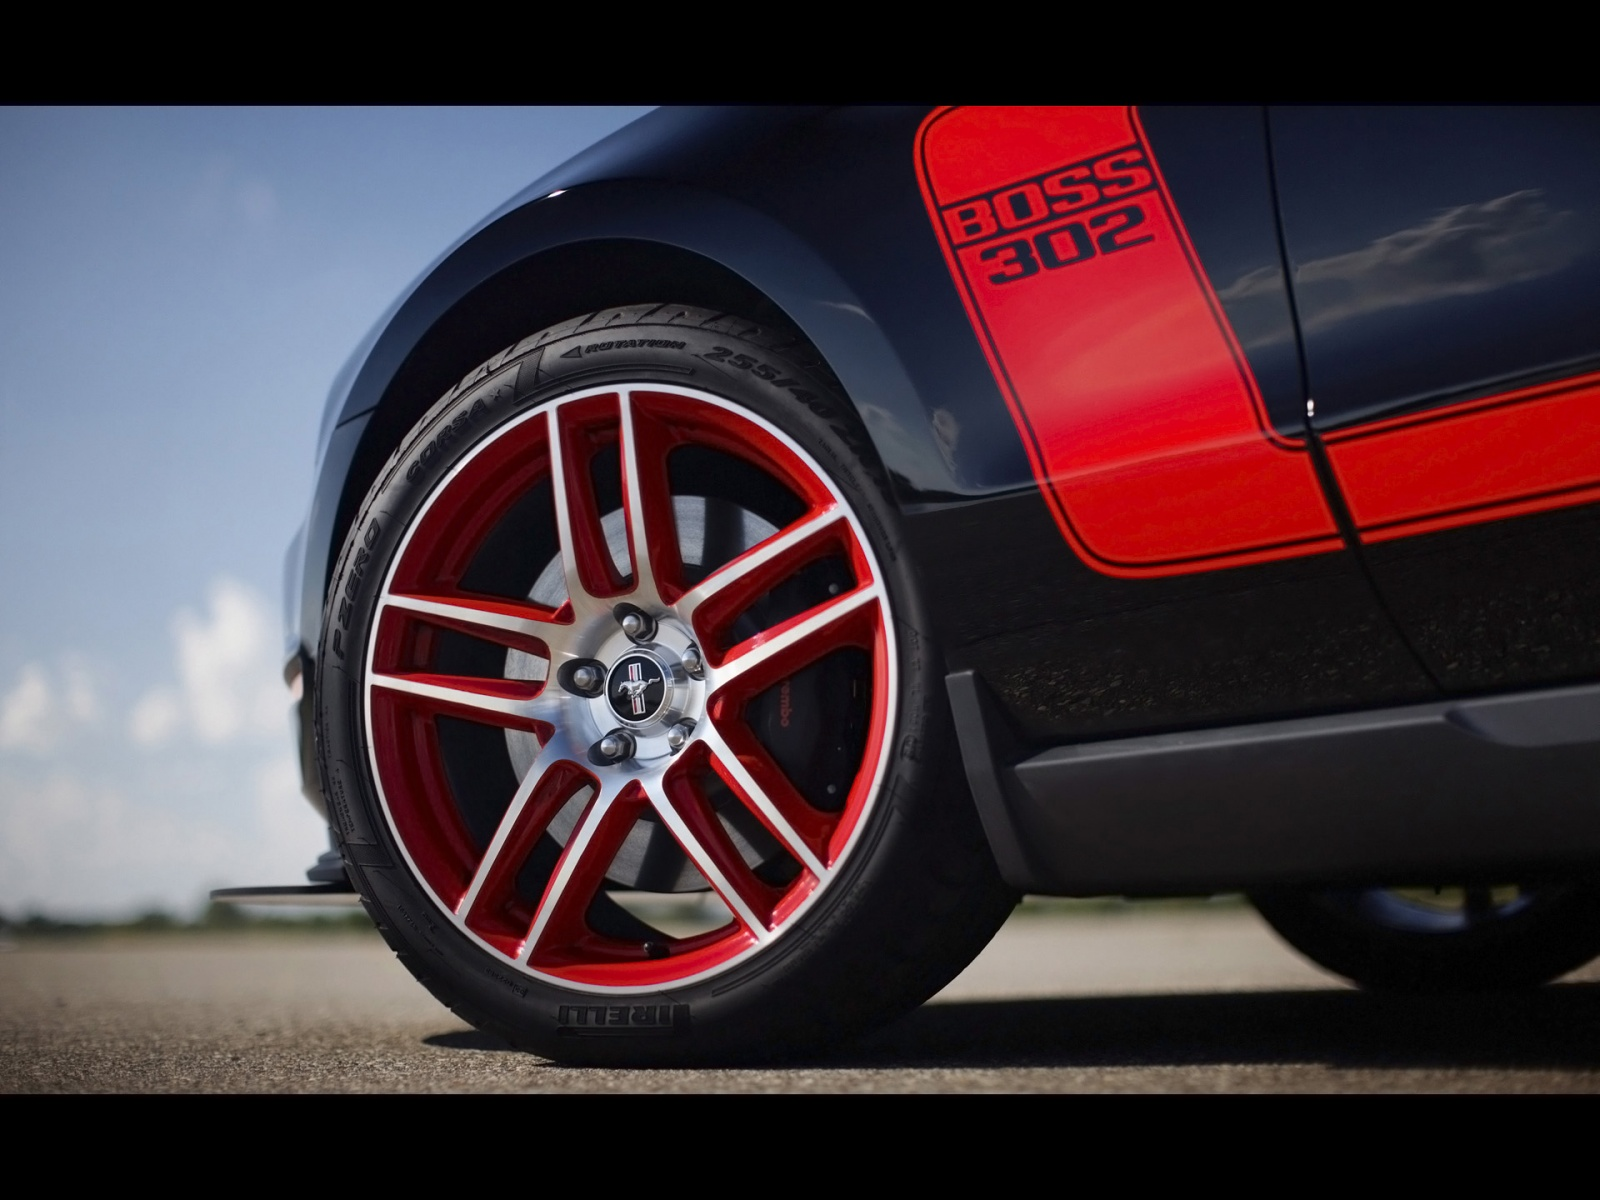 Ford Mustang Boss 302 Front Wheel 1600x1200 HD Wallpaper